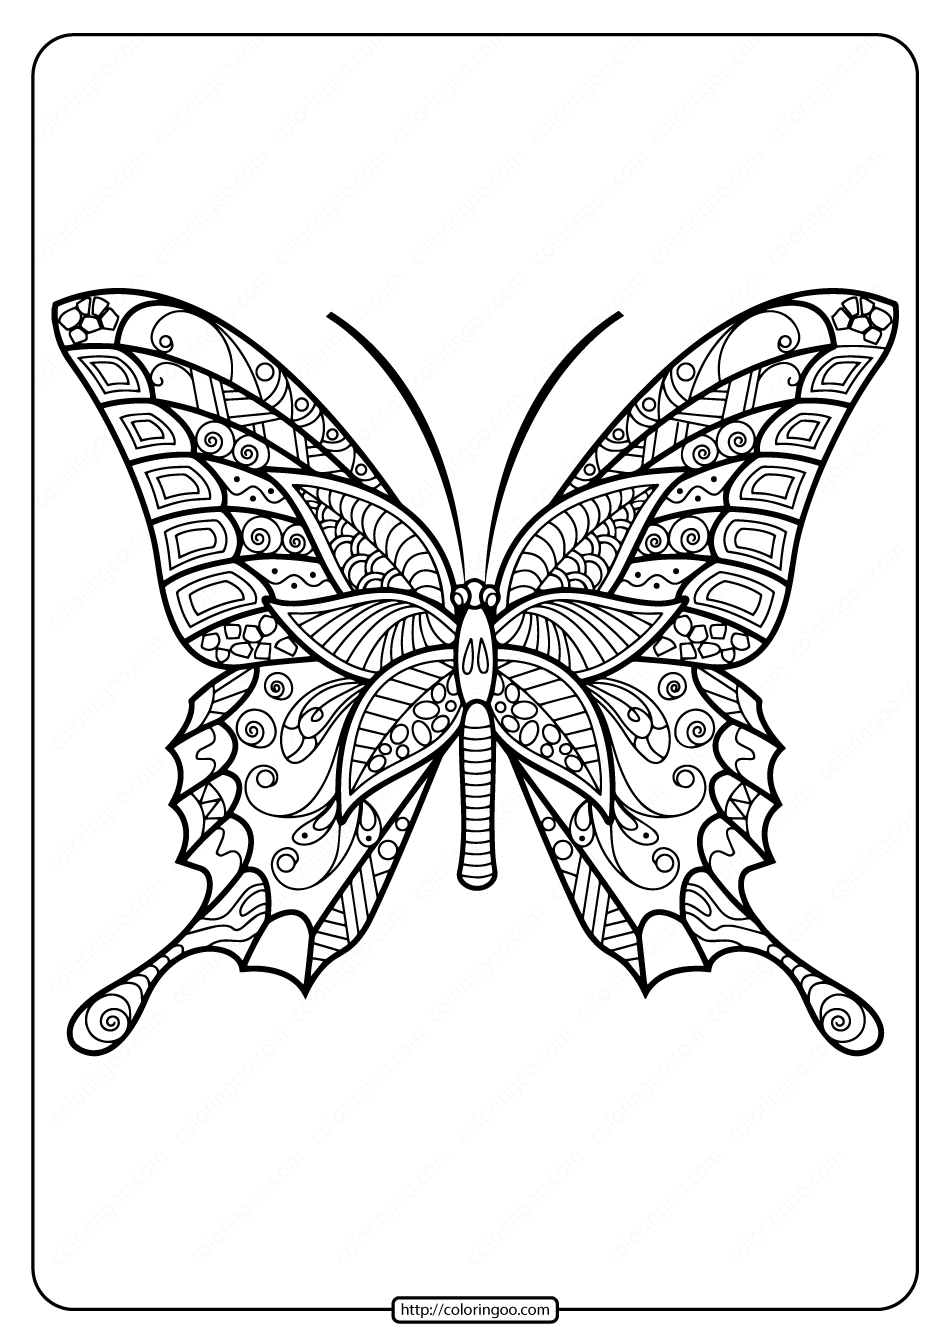 Printable Butterfly Mandala Pdf Coloring Pages 42 In 2020 Insect Coloring Pages Butterfly Coloring Page Butterfly Printable